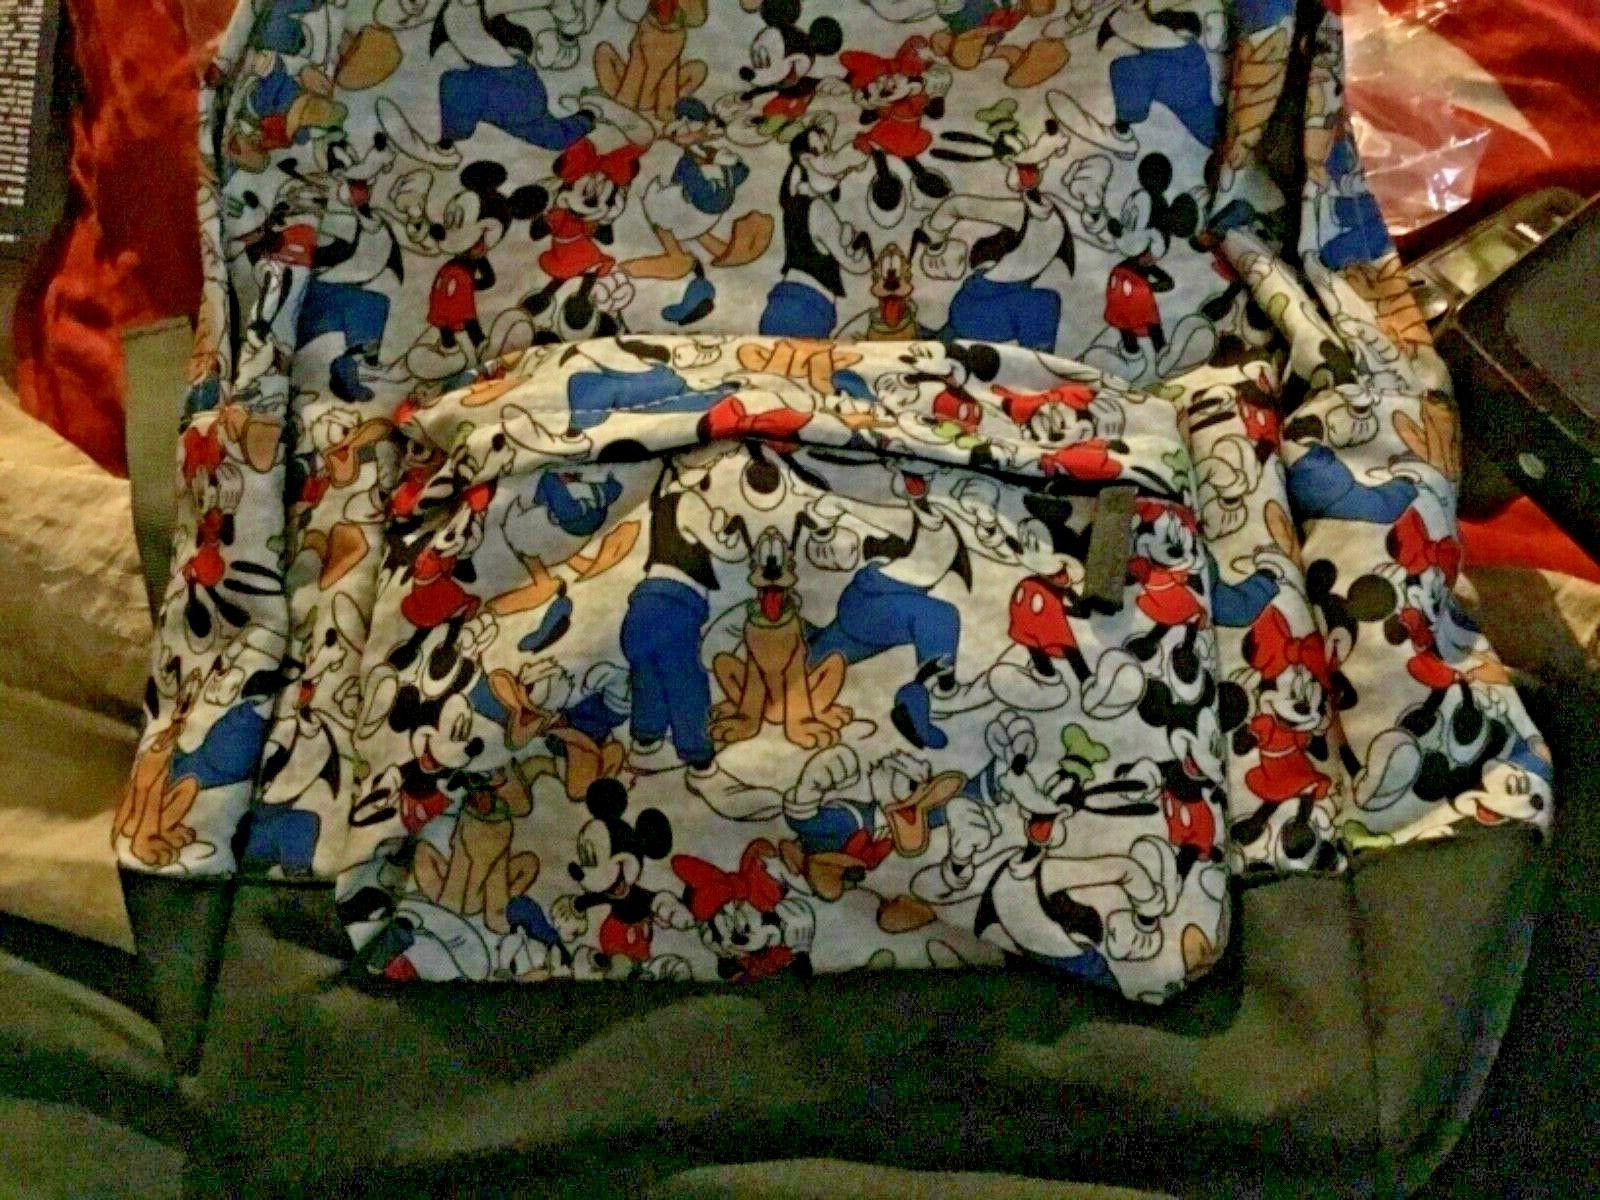 Store Backpack. Minnie, Goofy, Donald